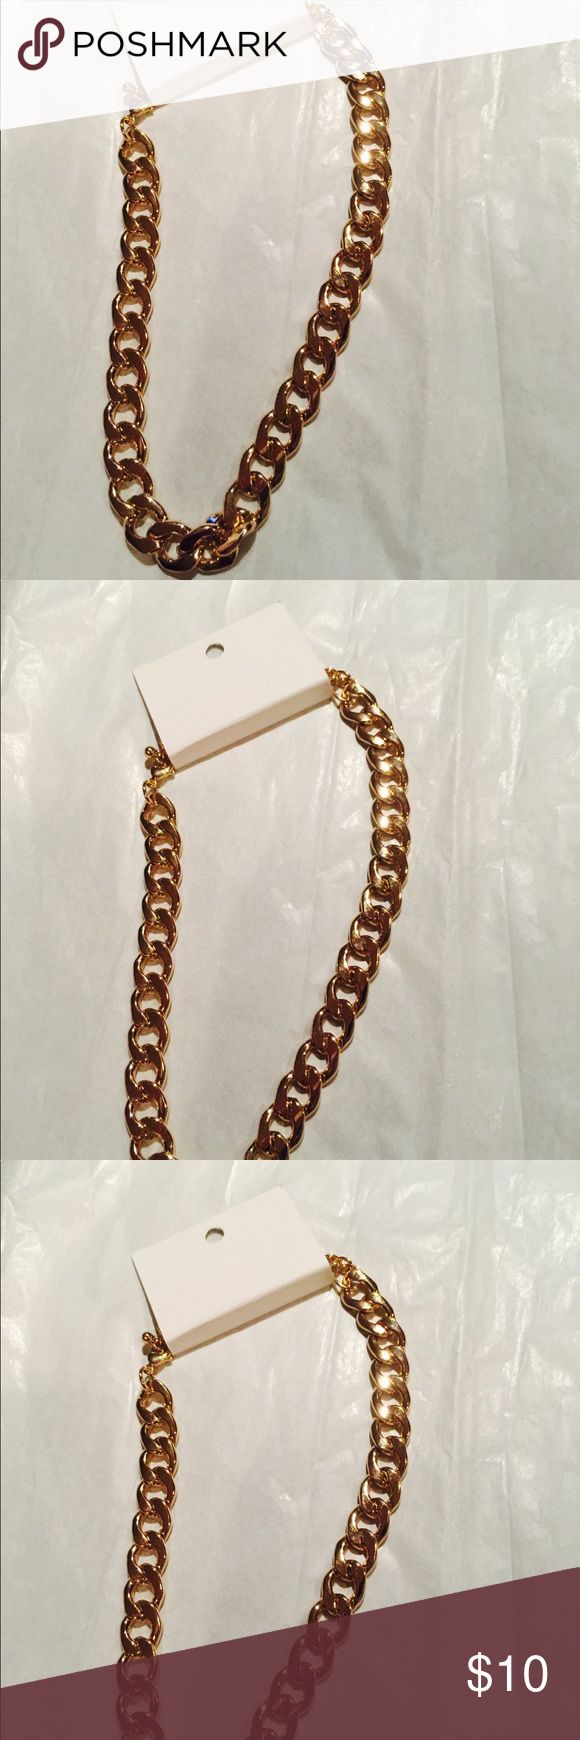 Gold chunky Chain necklace  with-adjustable length Very nice Gold chunky necklaceAdjustable. Stay on point necklace. Brand new. H&M Jewelry Necklaces